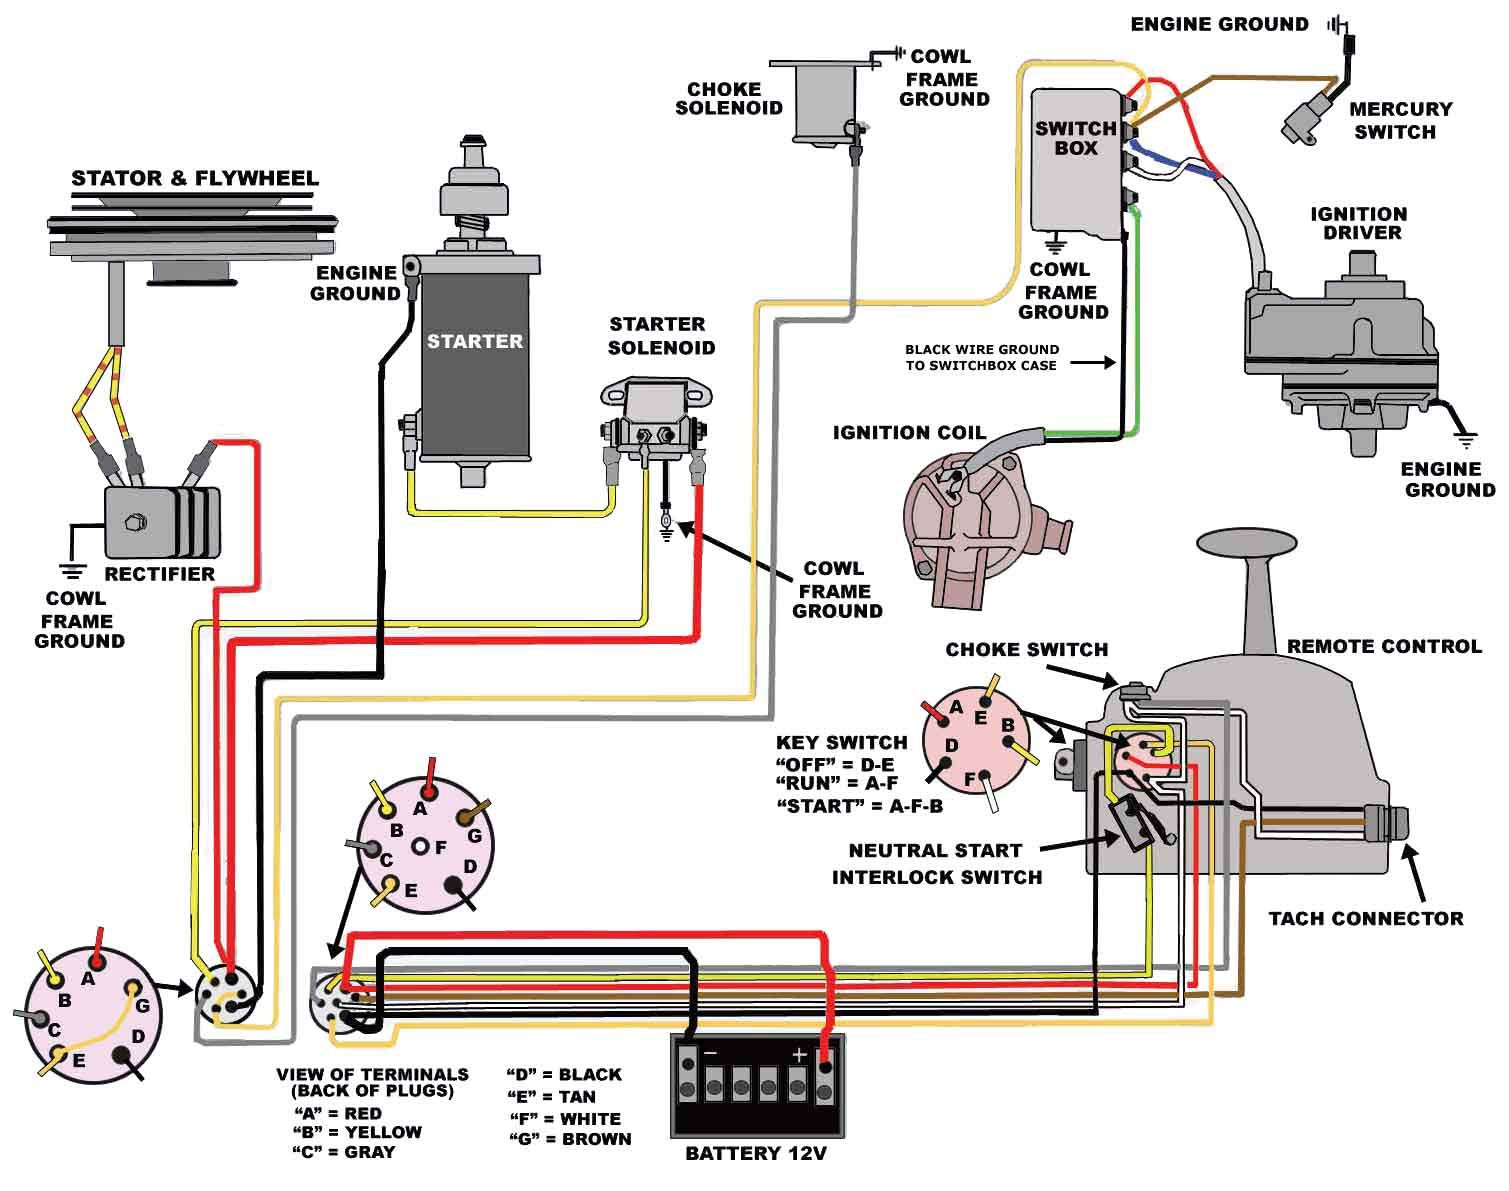 13cfb2d962bcd0c03103625817b7d51d mercury outboard wiring diagram diagram pinterest mercury boat starter wiring diagram at edmiracle.co